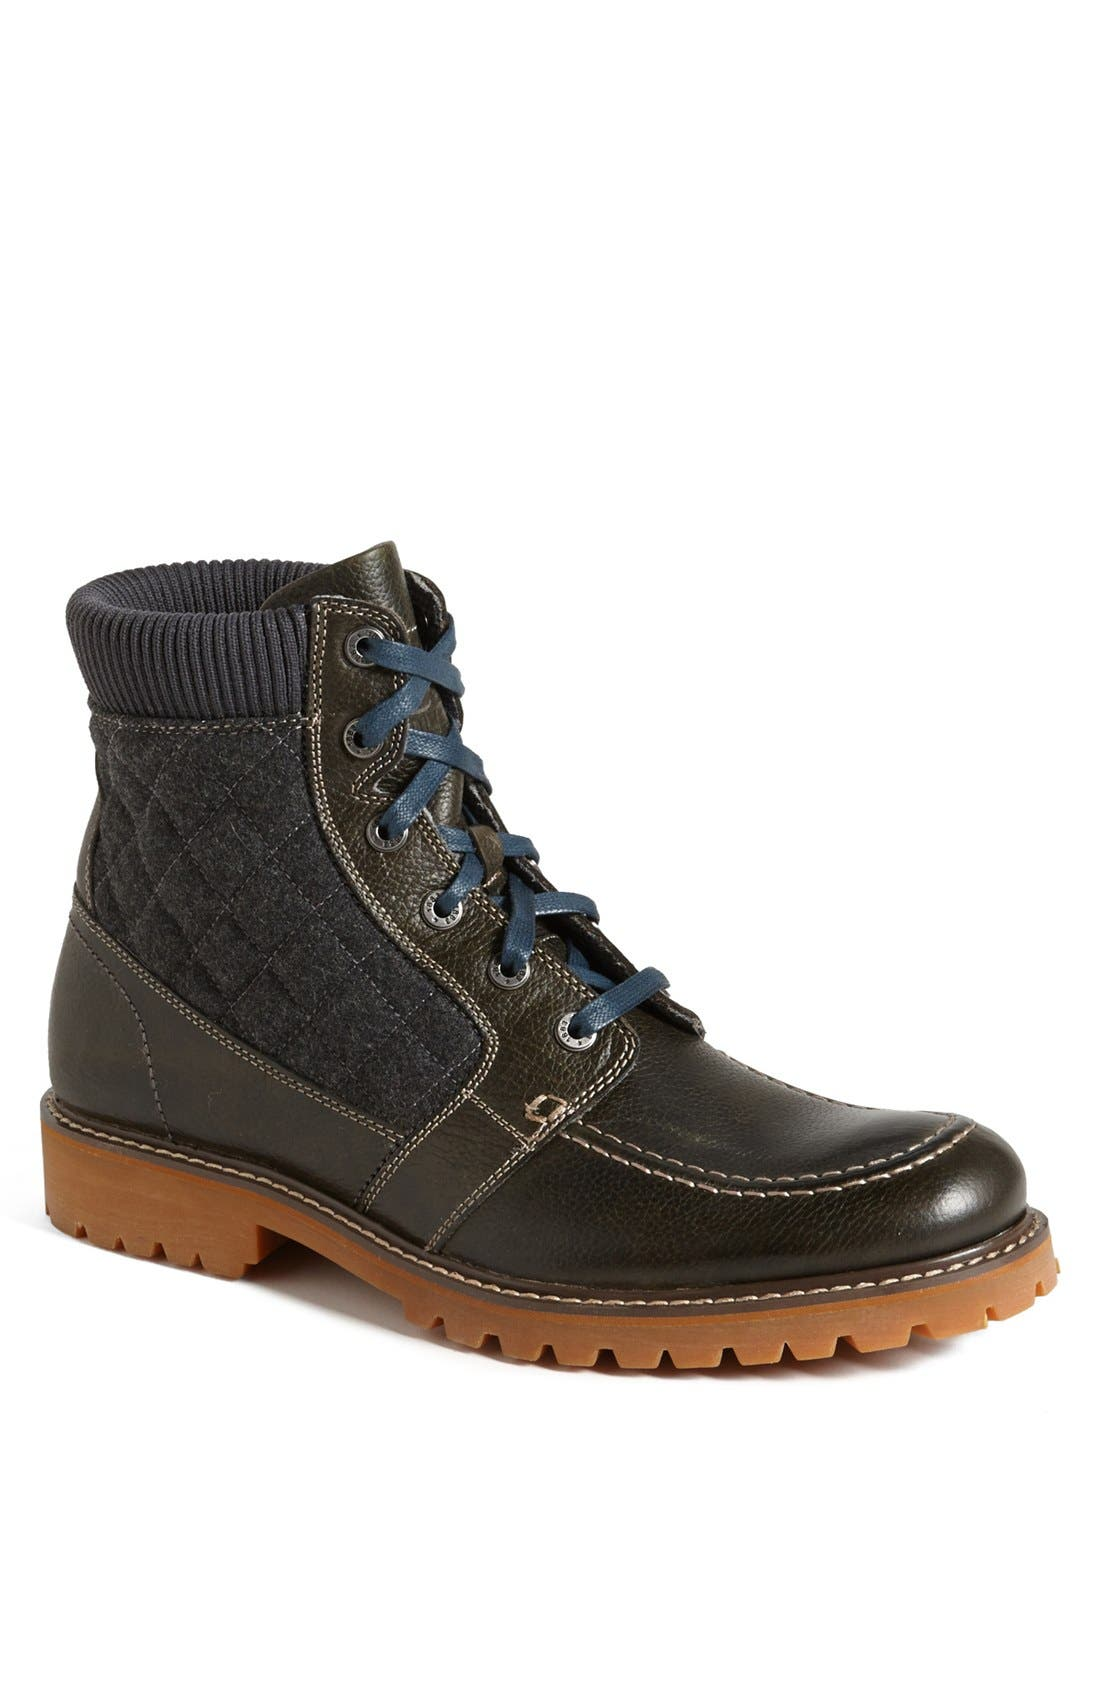 Alternate Image 1 Selected - Wolverine 'Birch' Moc Toe Boot